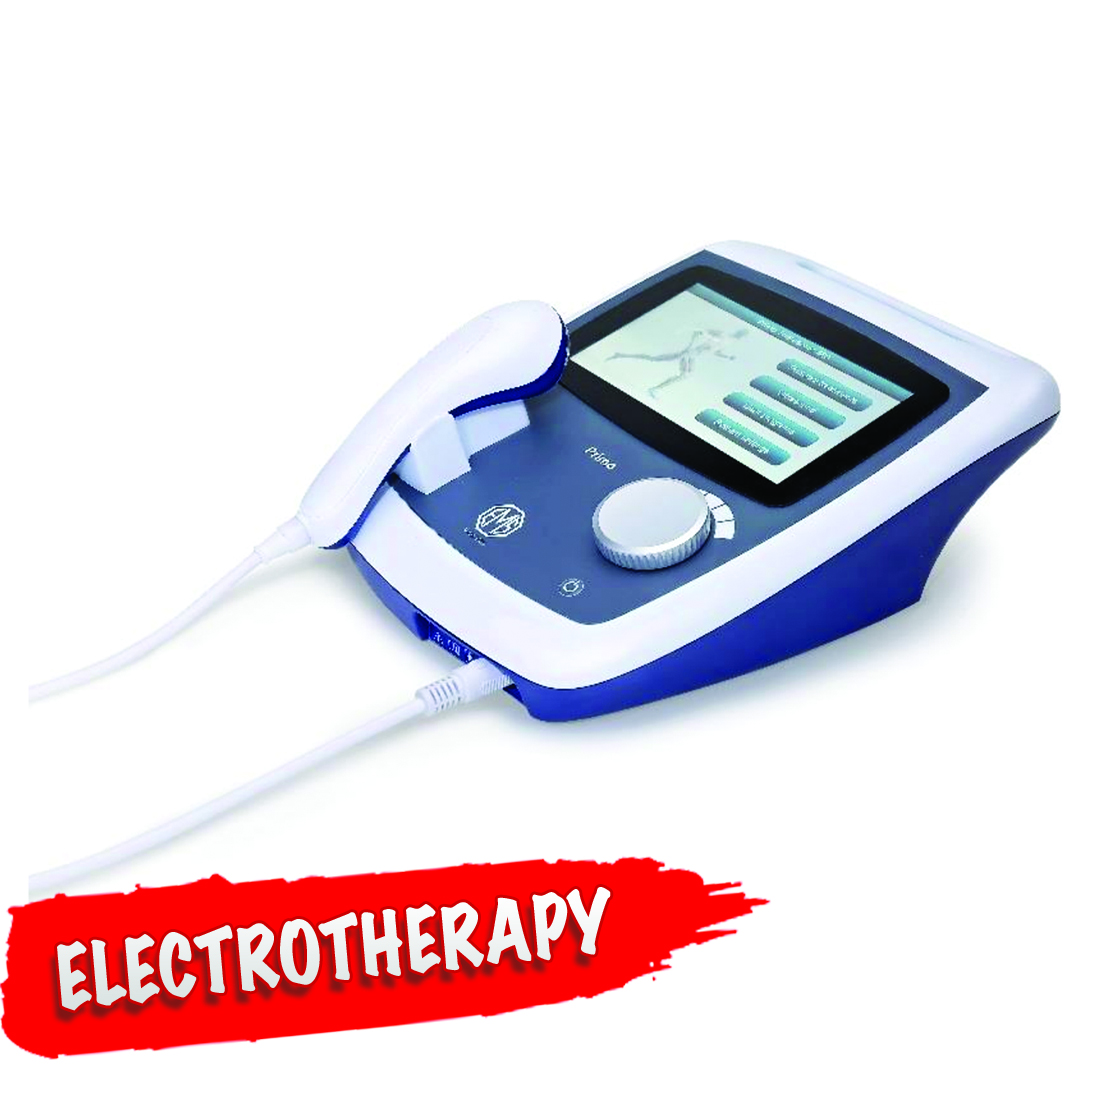 Electrotherapy - Physiotherapy Equipment Online